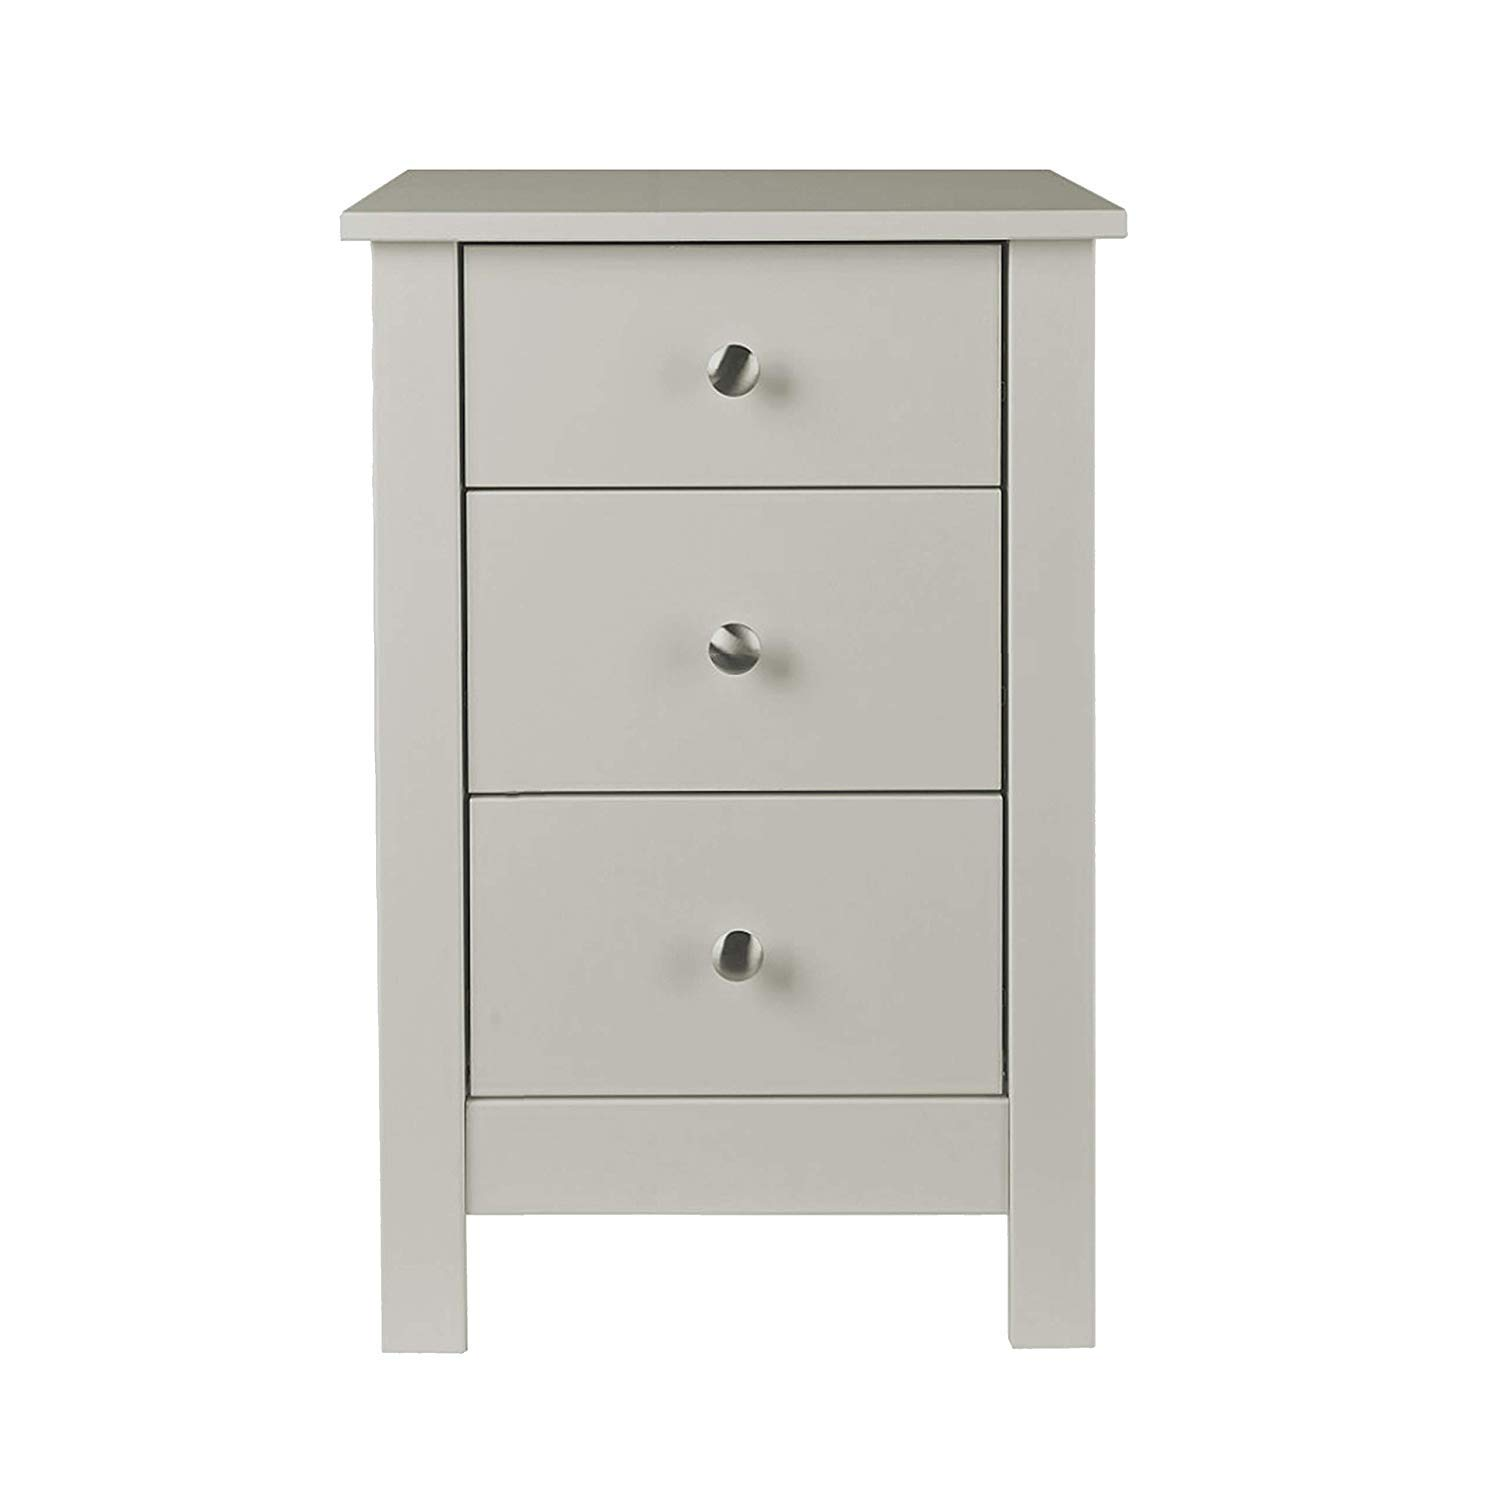 Furniture To Go | Florence 3 Drawer Shaker Bedside Cabinet with Smooth Lacquer Finish - Black NJA 1040120